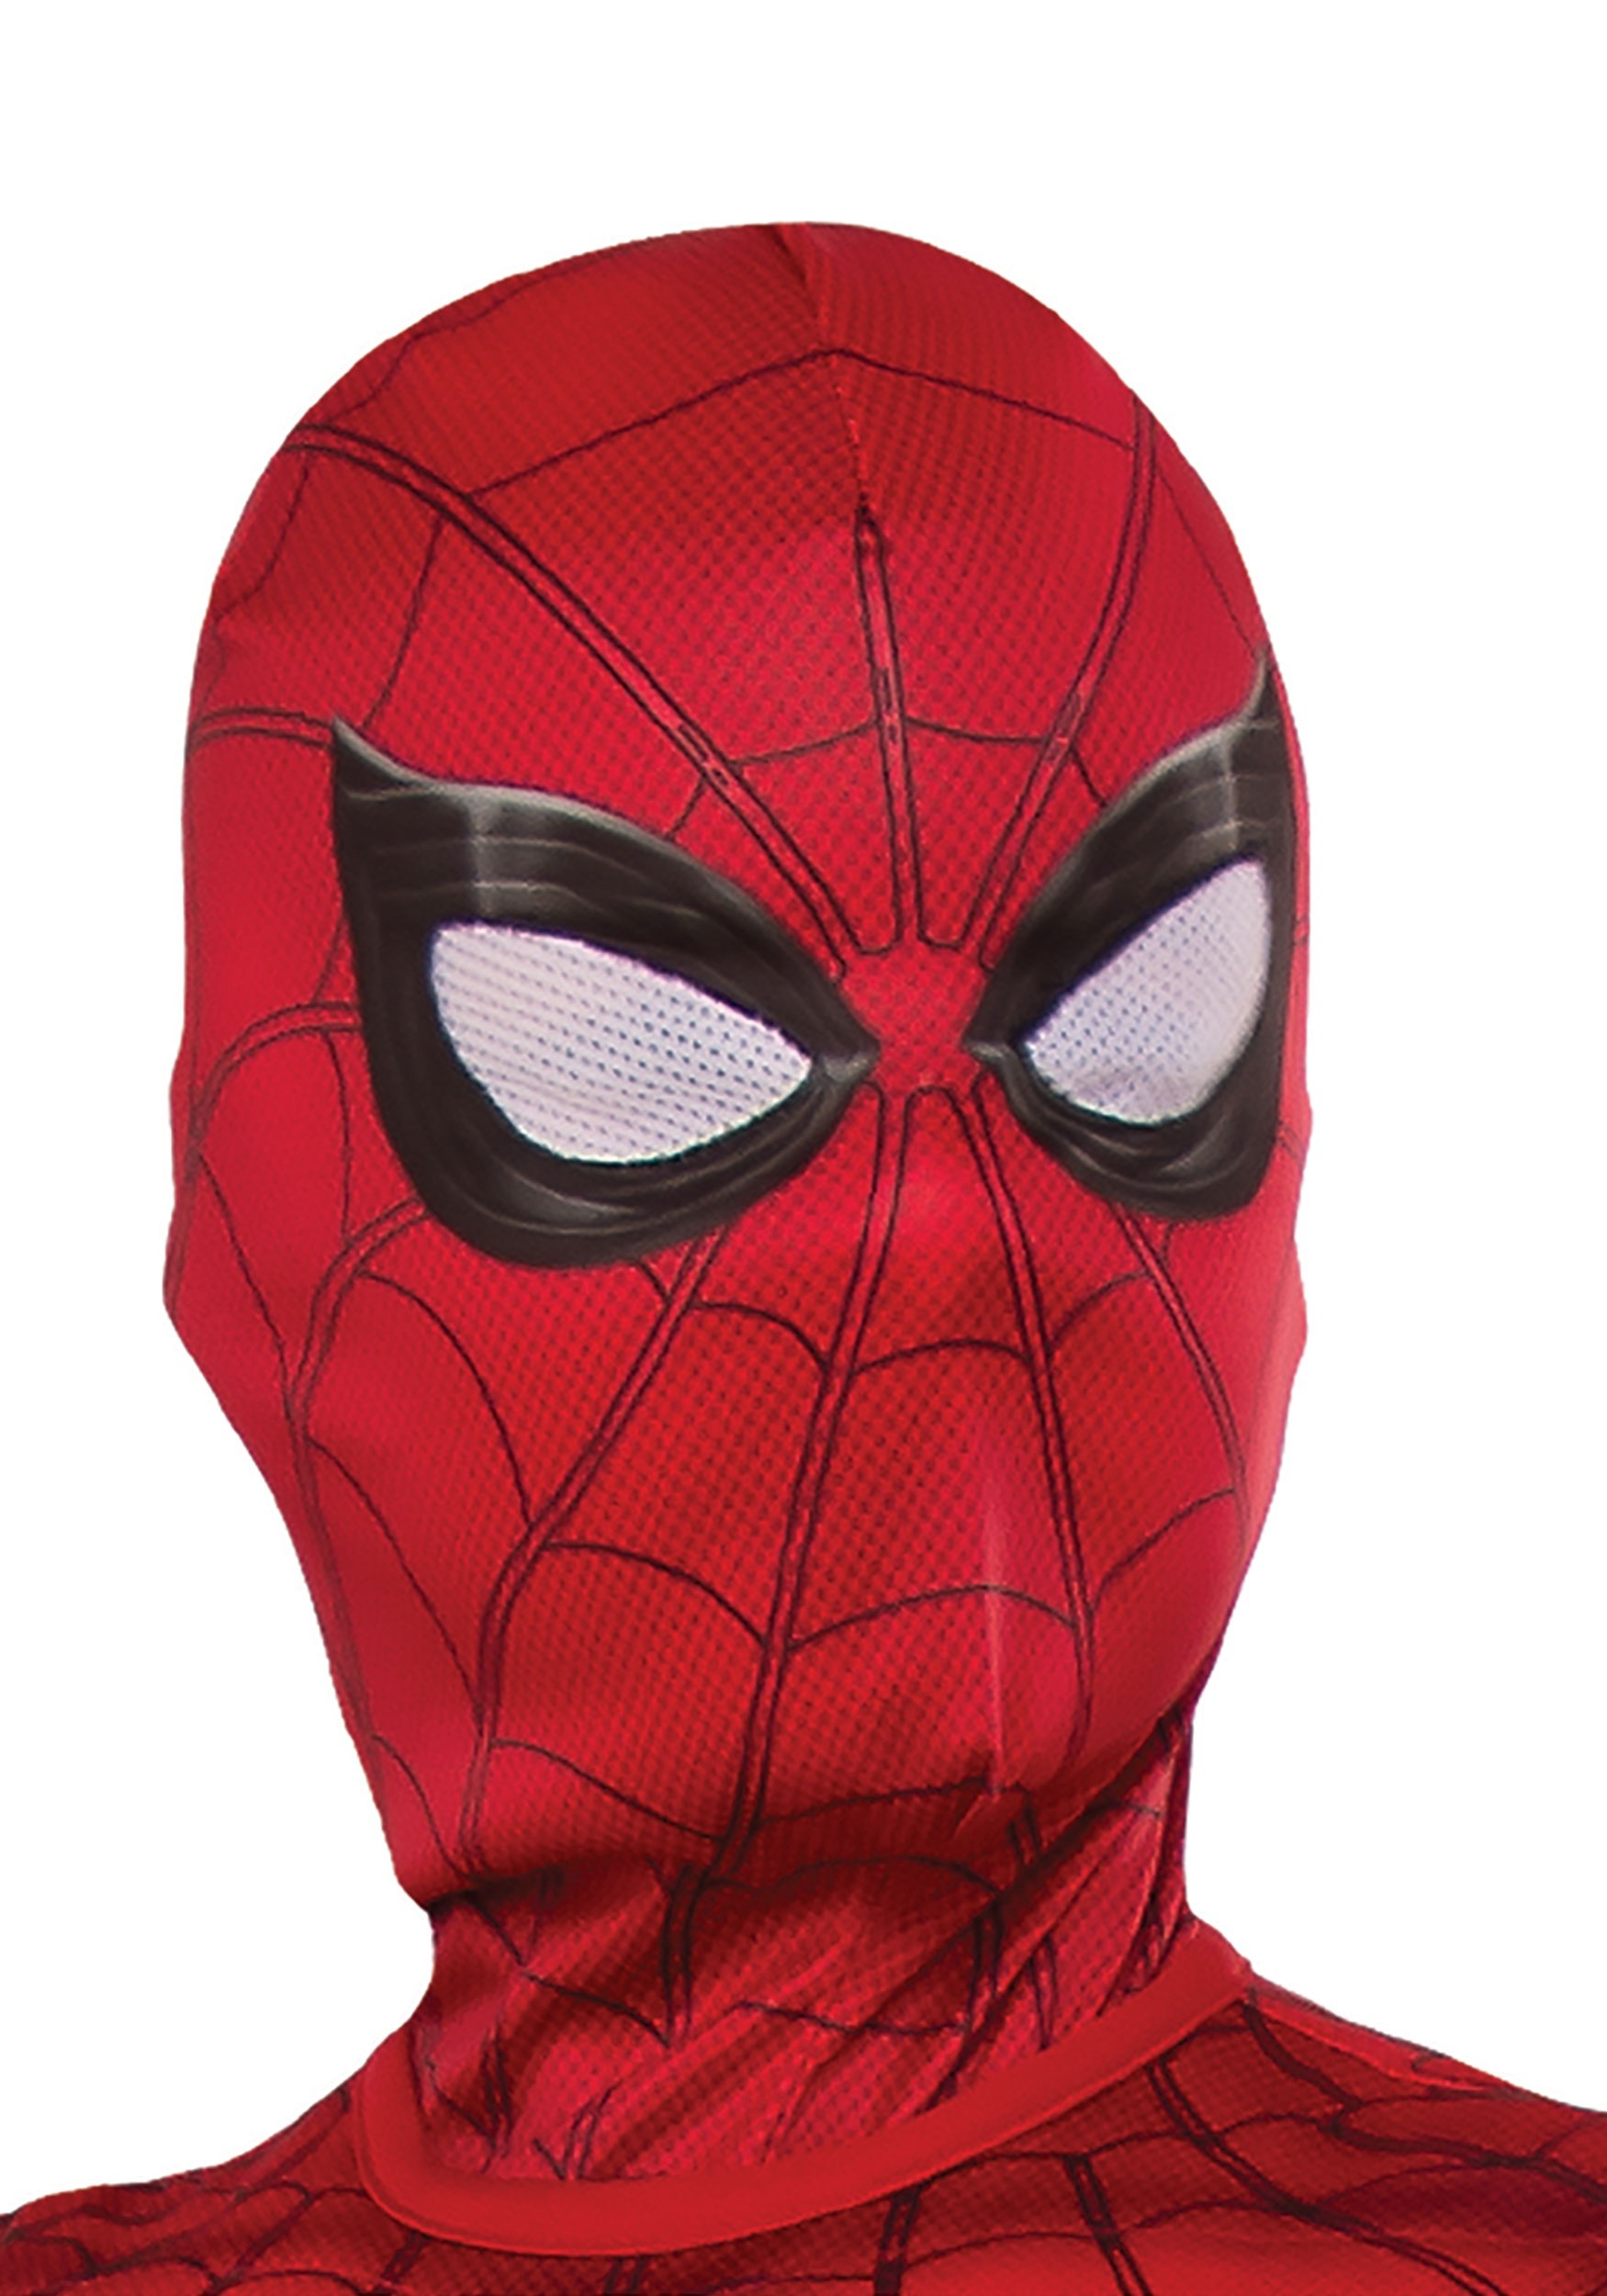 Child Spider-Man Mask RU34499